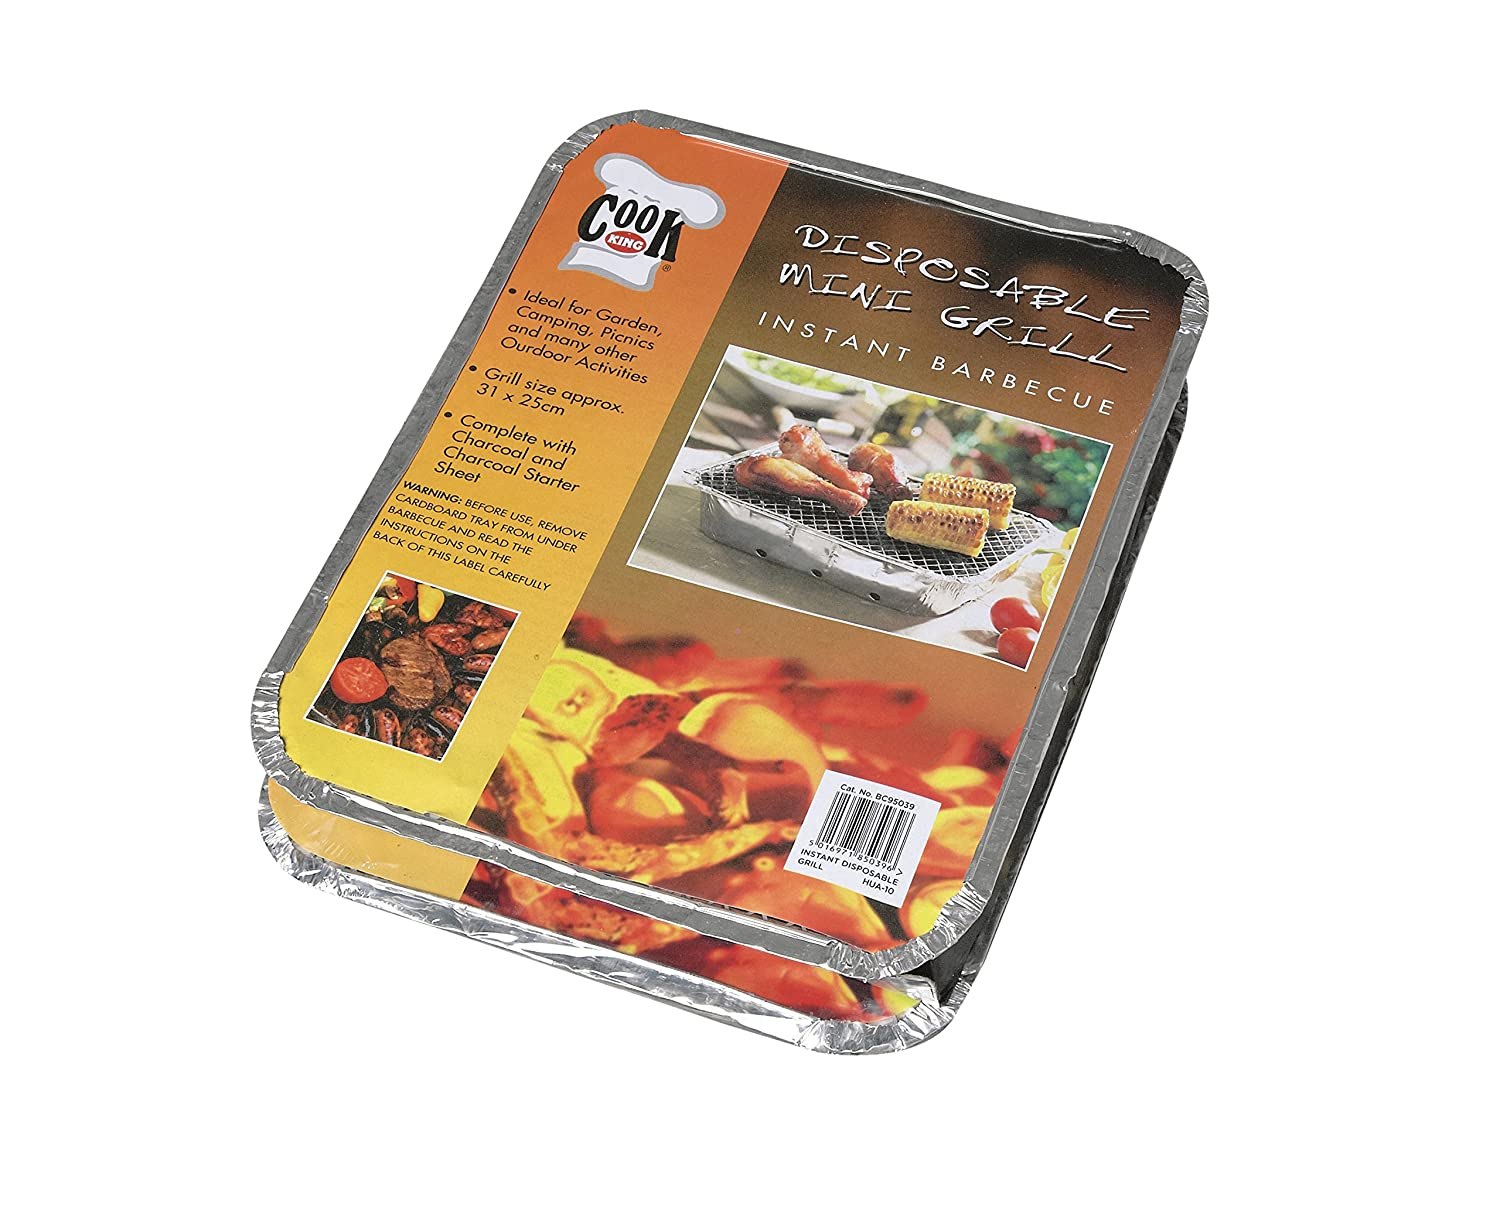 Premier Decorations BC95039D Disposable Instant Barbecue Grill (Pack of 2)